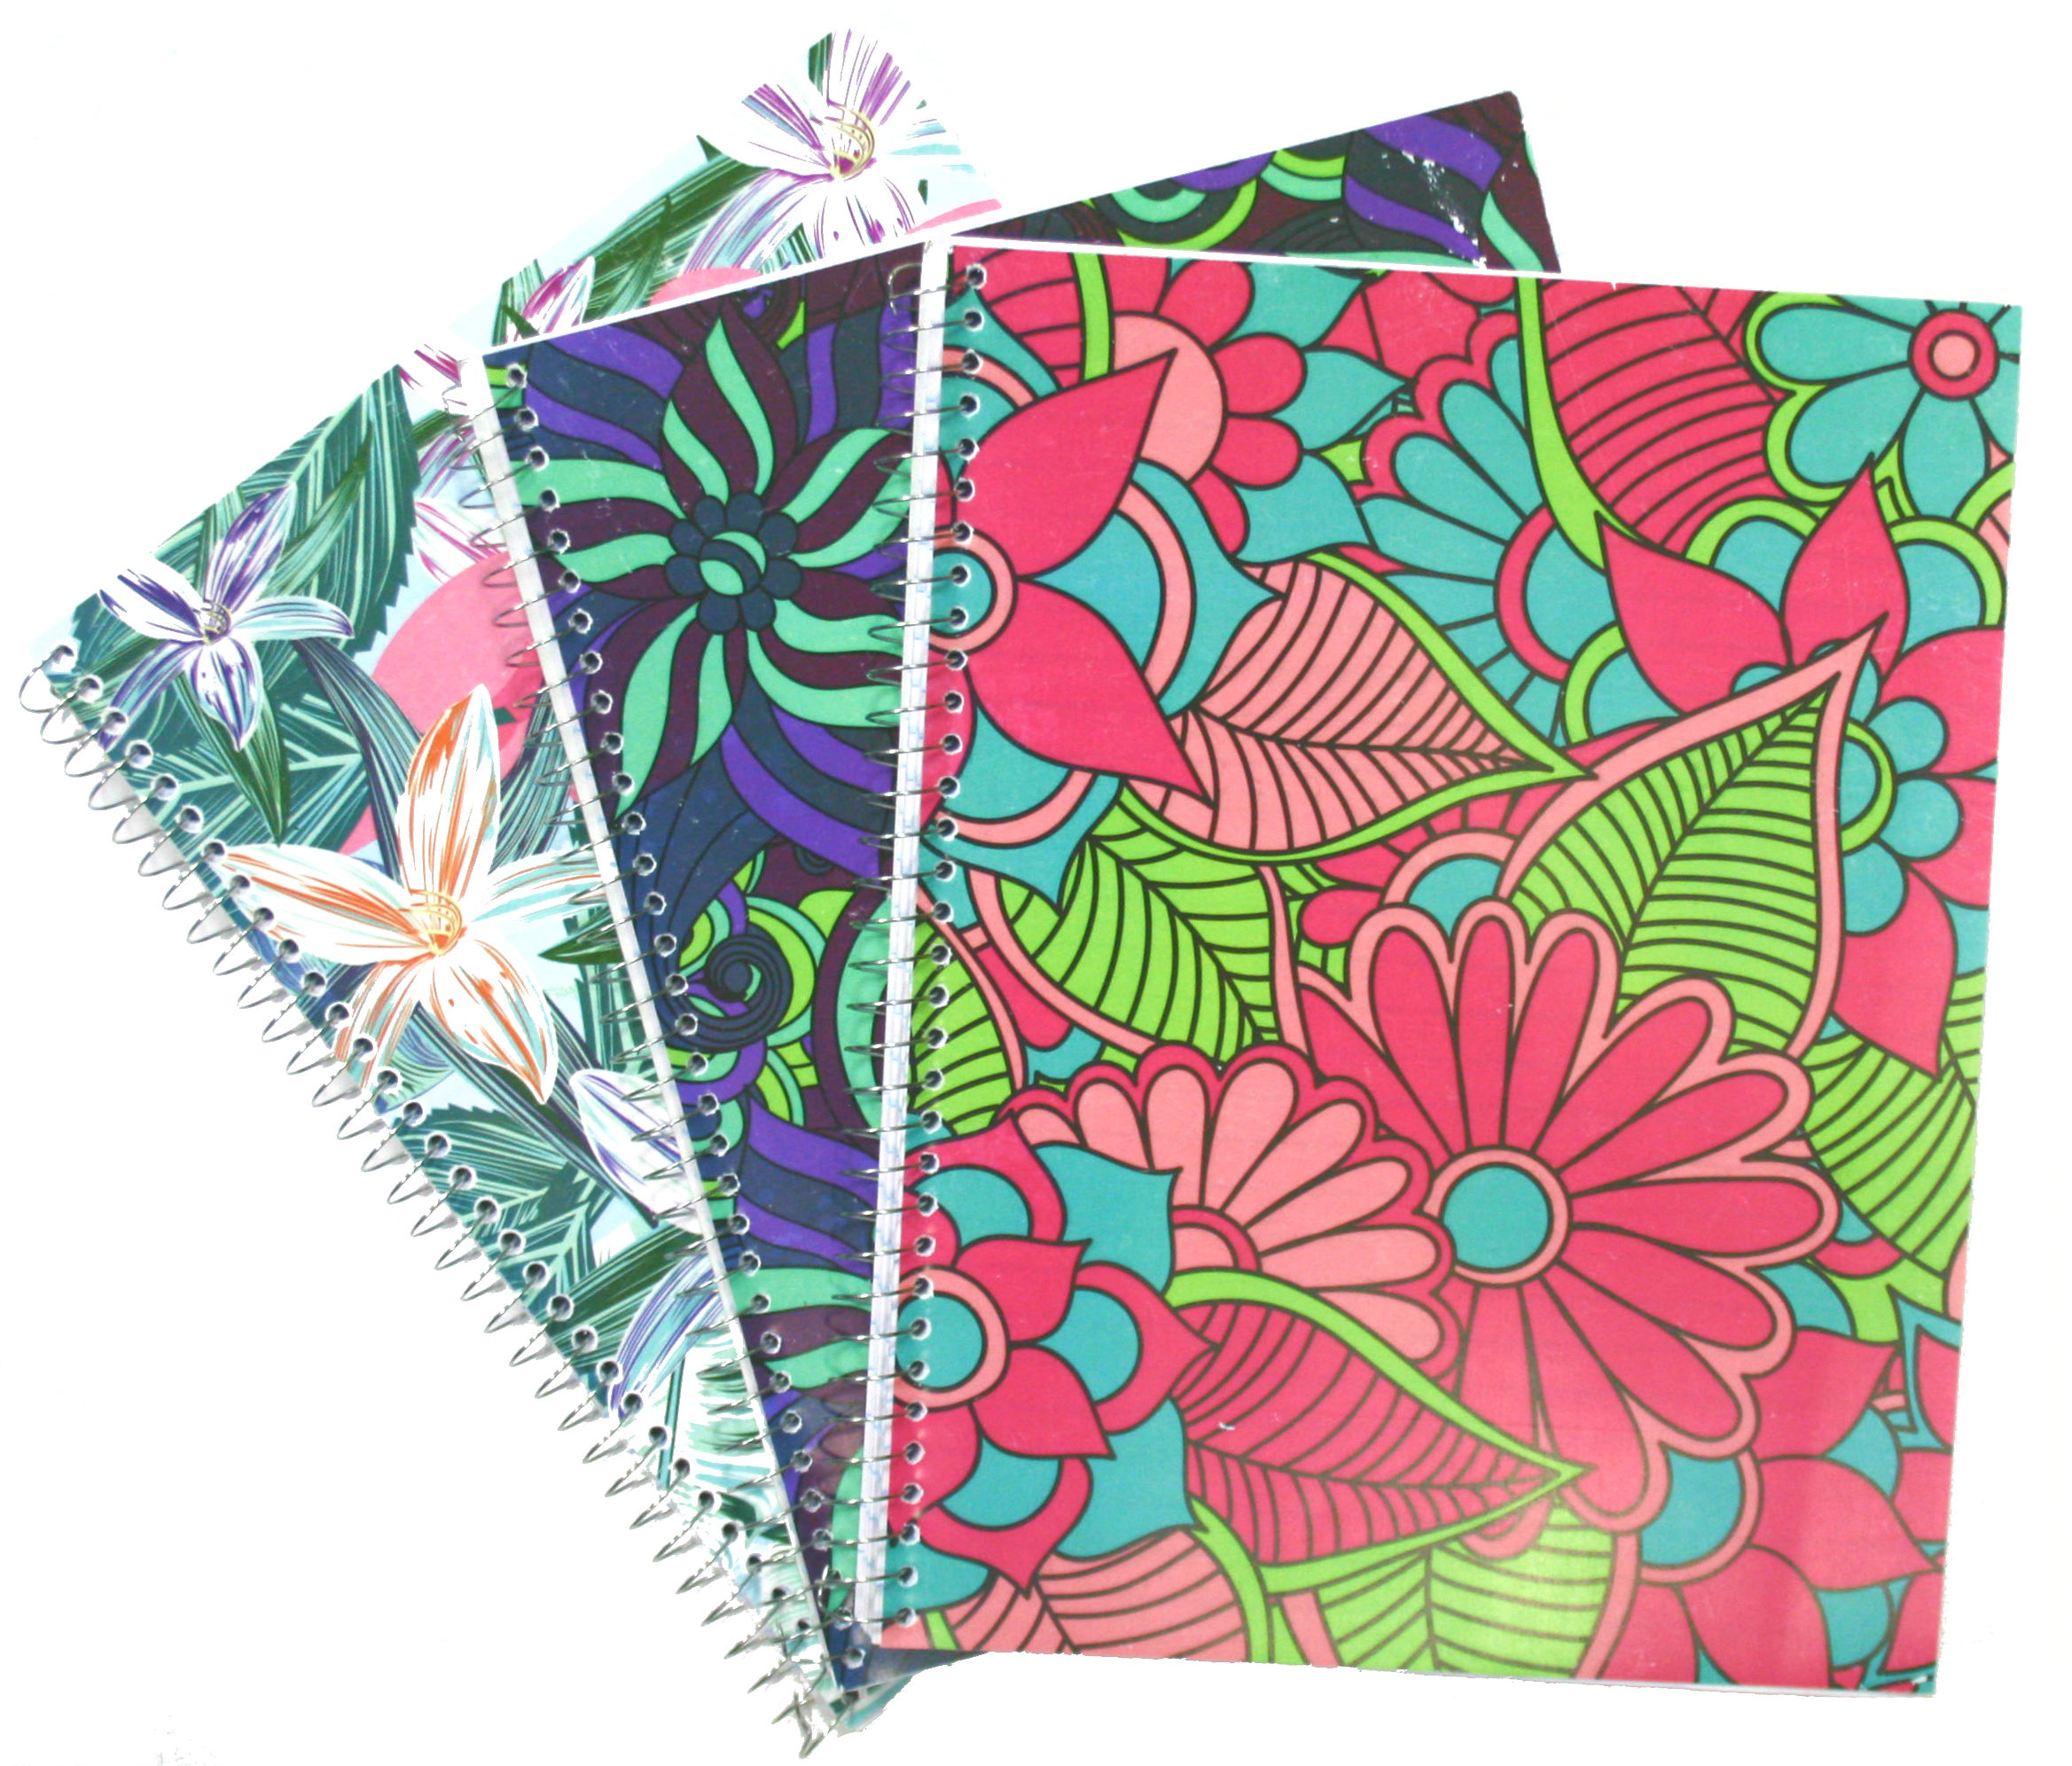 27310c97e507 Wholesale Notebook now available at Wholesale Central - Items 1 - 40